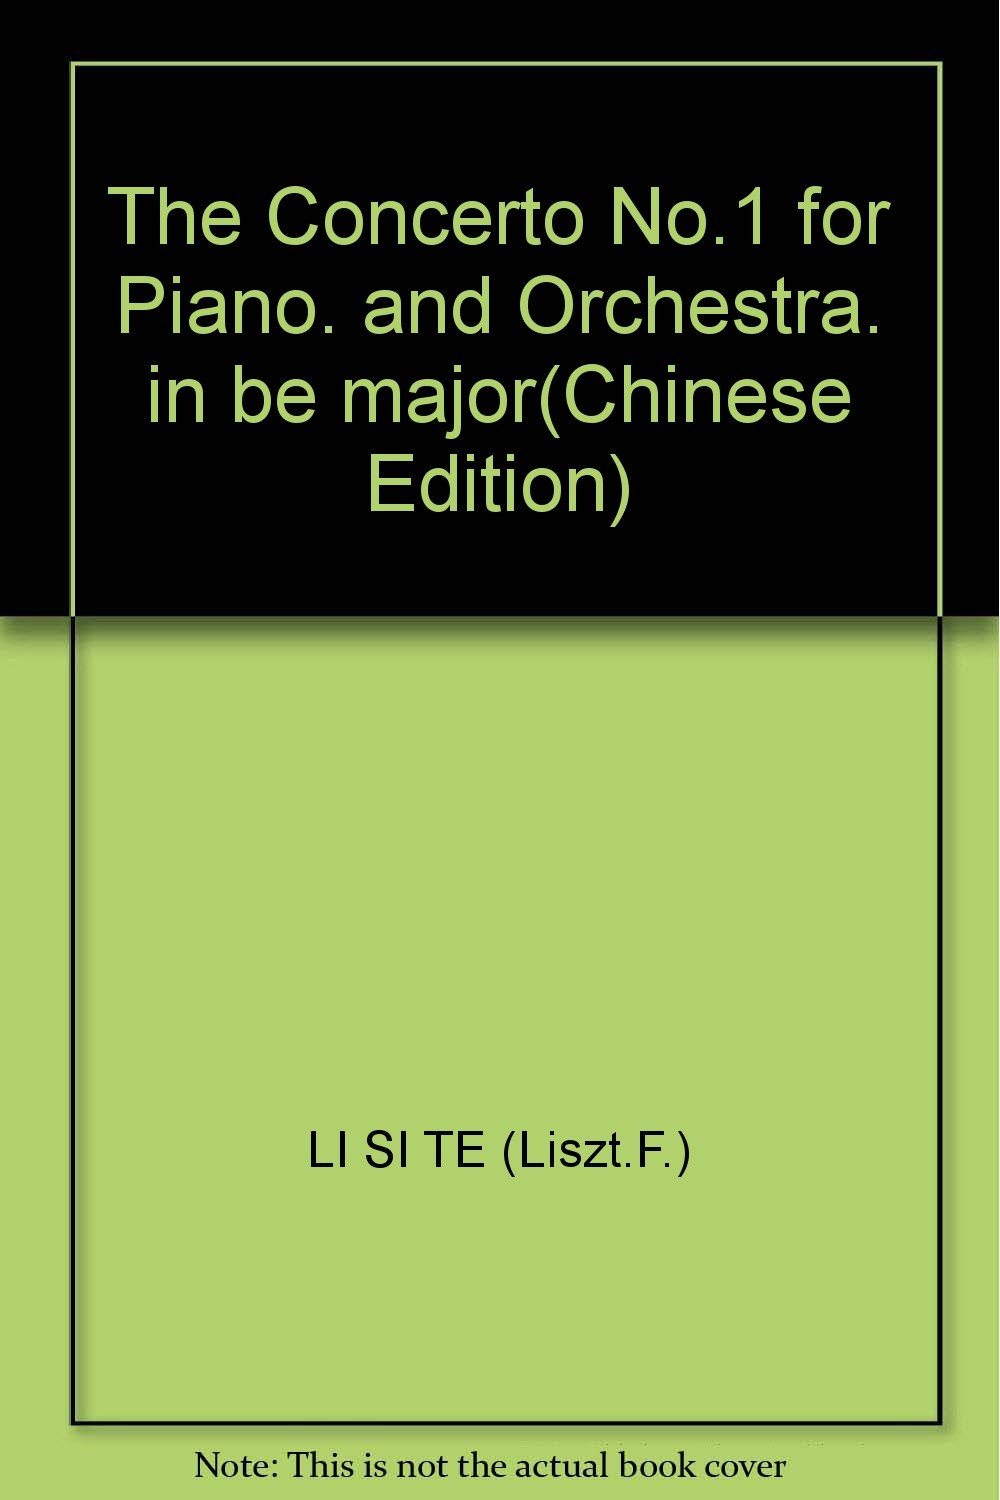 The Concerto No.1 for Piano. and Orchestra. in be major(Chinese Edition) ebook